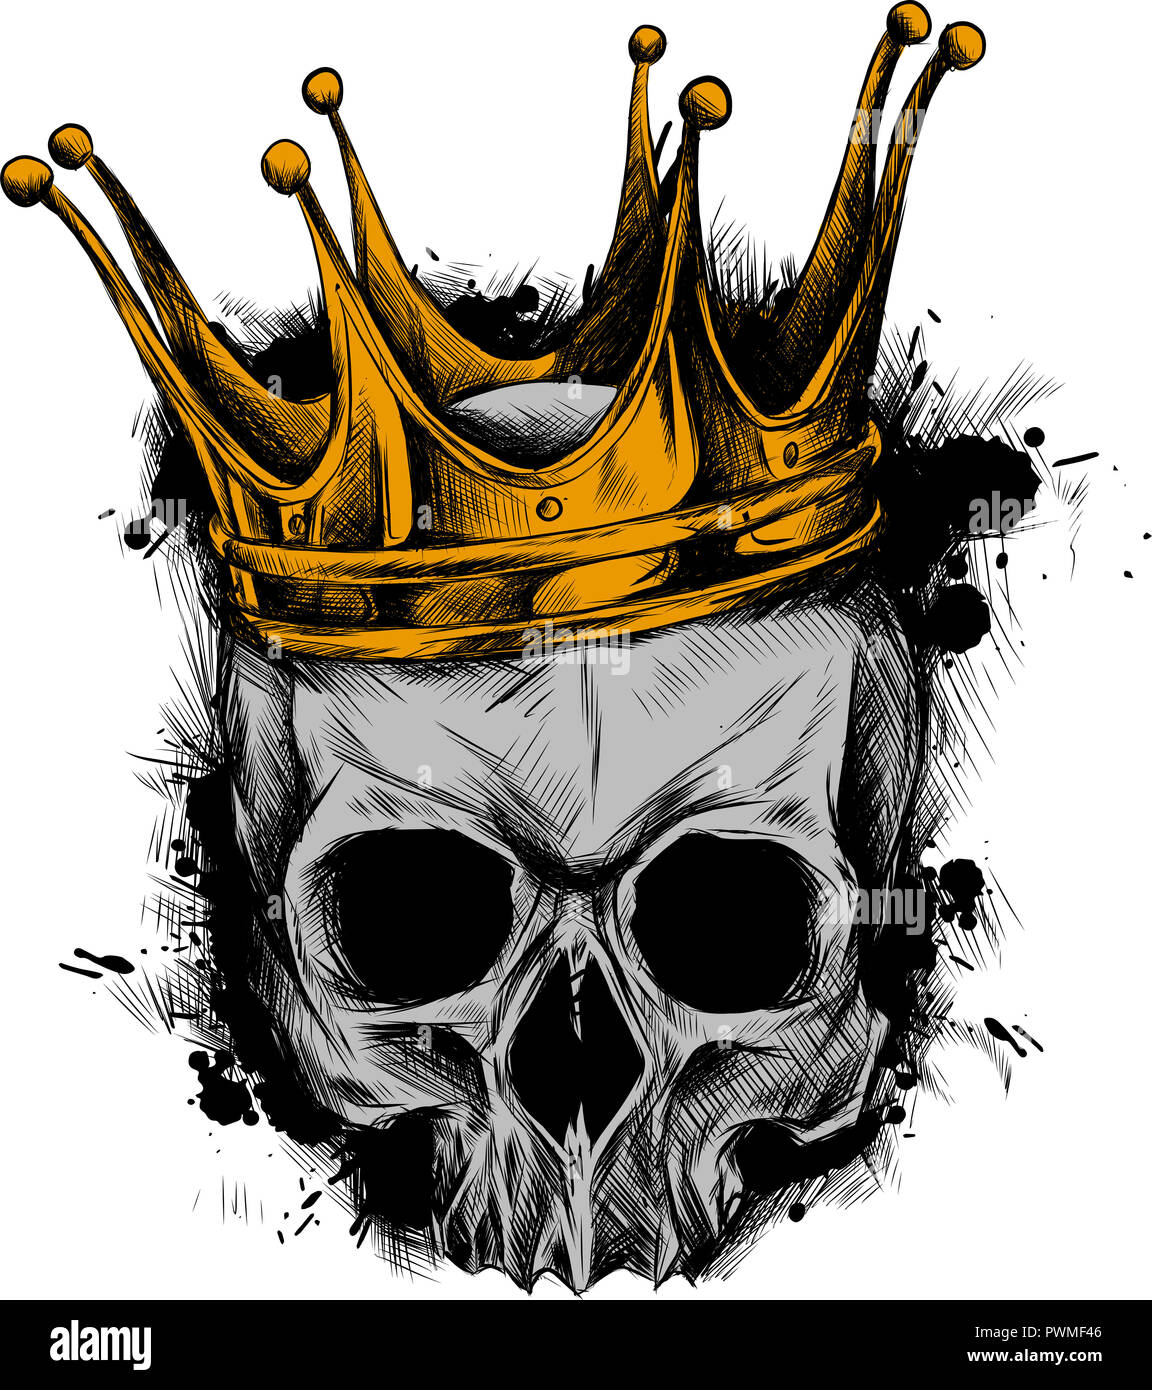 Illustration of black and white skull in crown with beard isolated on white background Stock Photo